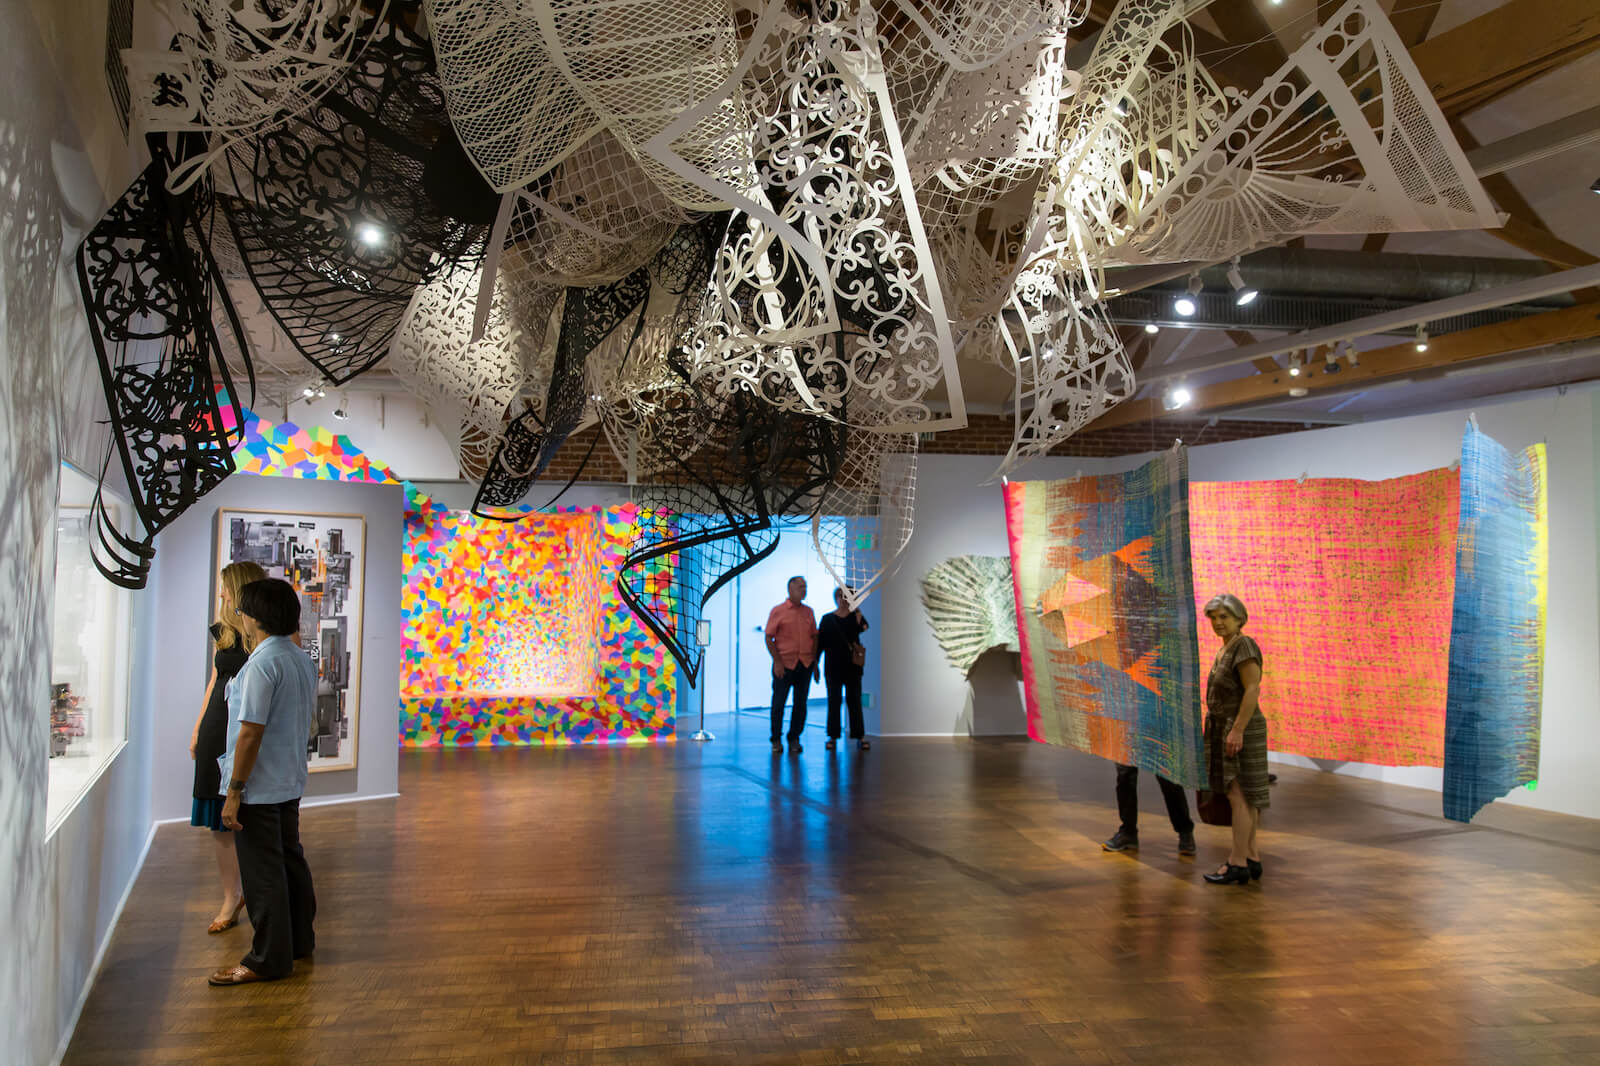 Big gallery space, with six people looking at big multi colored fabric hanging from the ceiling